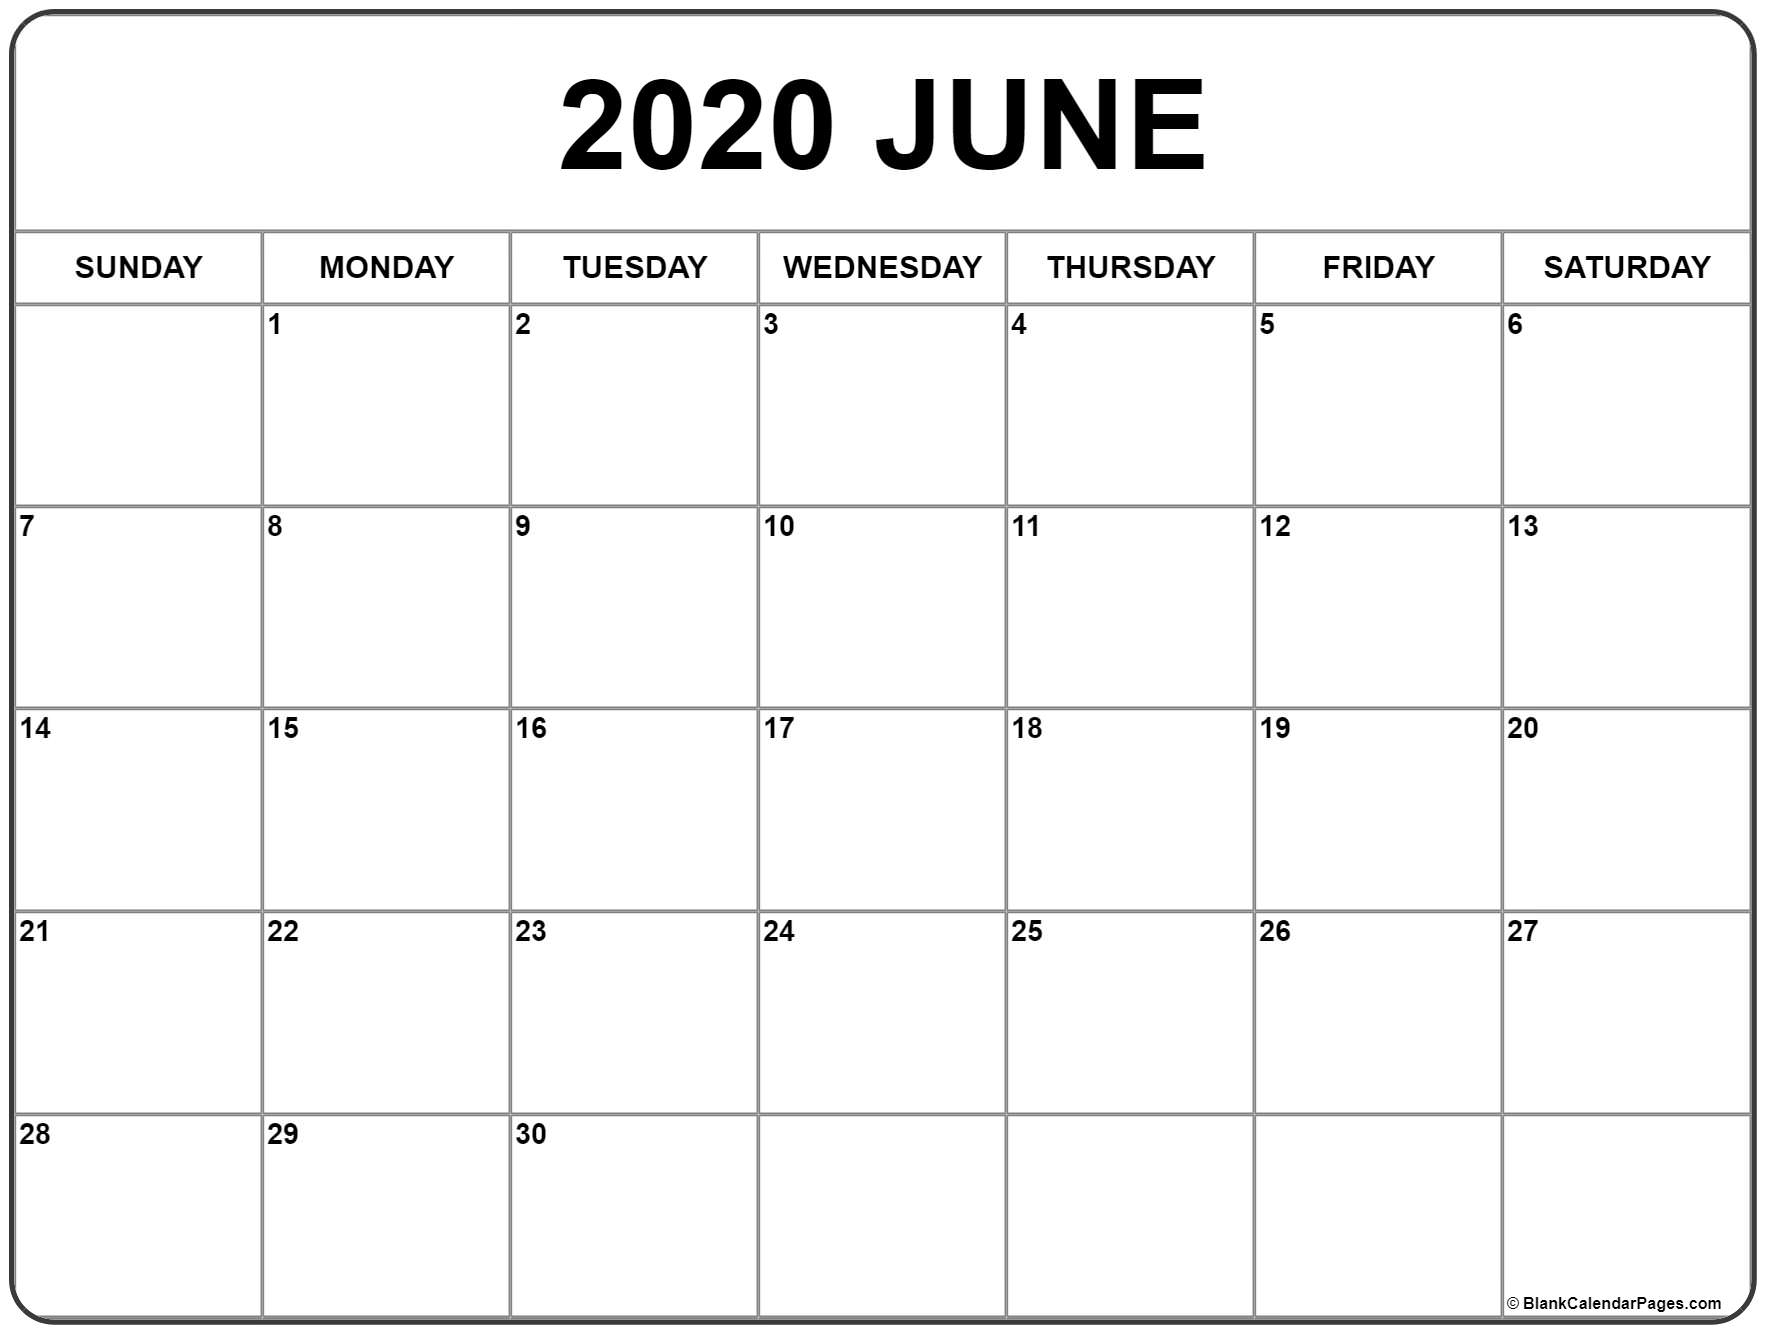 Weekly Calendar June 2020  Bolan.horizonconsulting.co pertaining to Calendars Michel Zbinden 2020